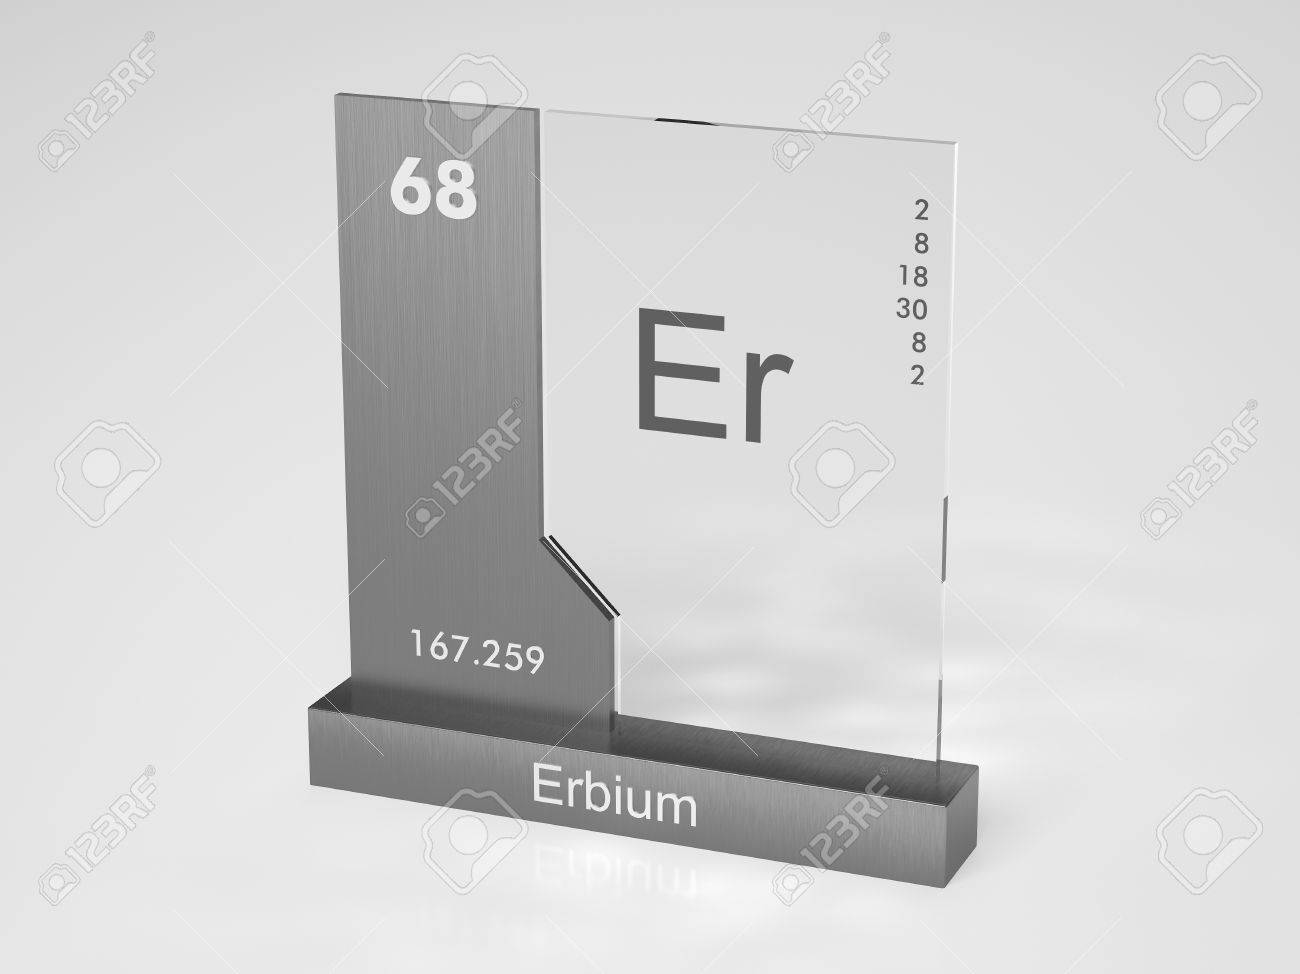 Erbium periodic table choice image periodic table images erbium chemical element periodic table africa and egypt map erbium symbol er chemical element of the gamestrikefo Image collections